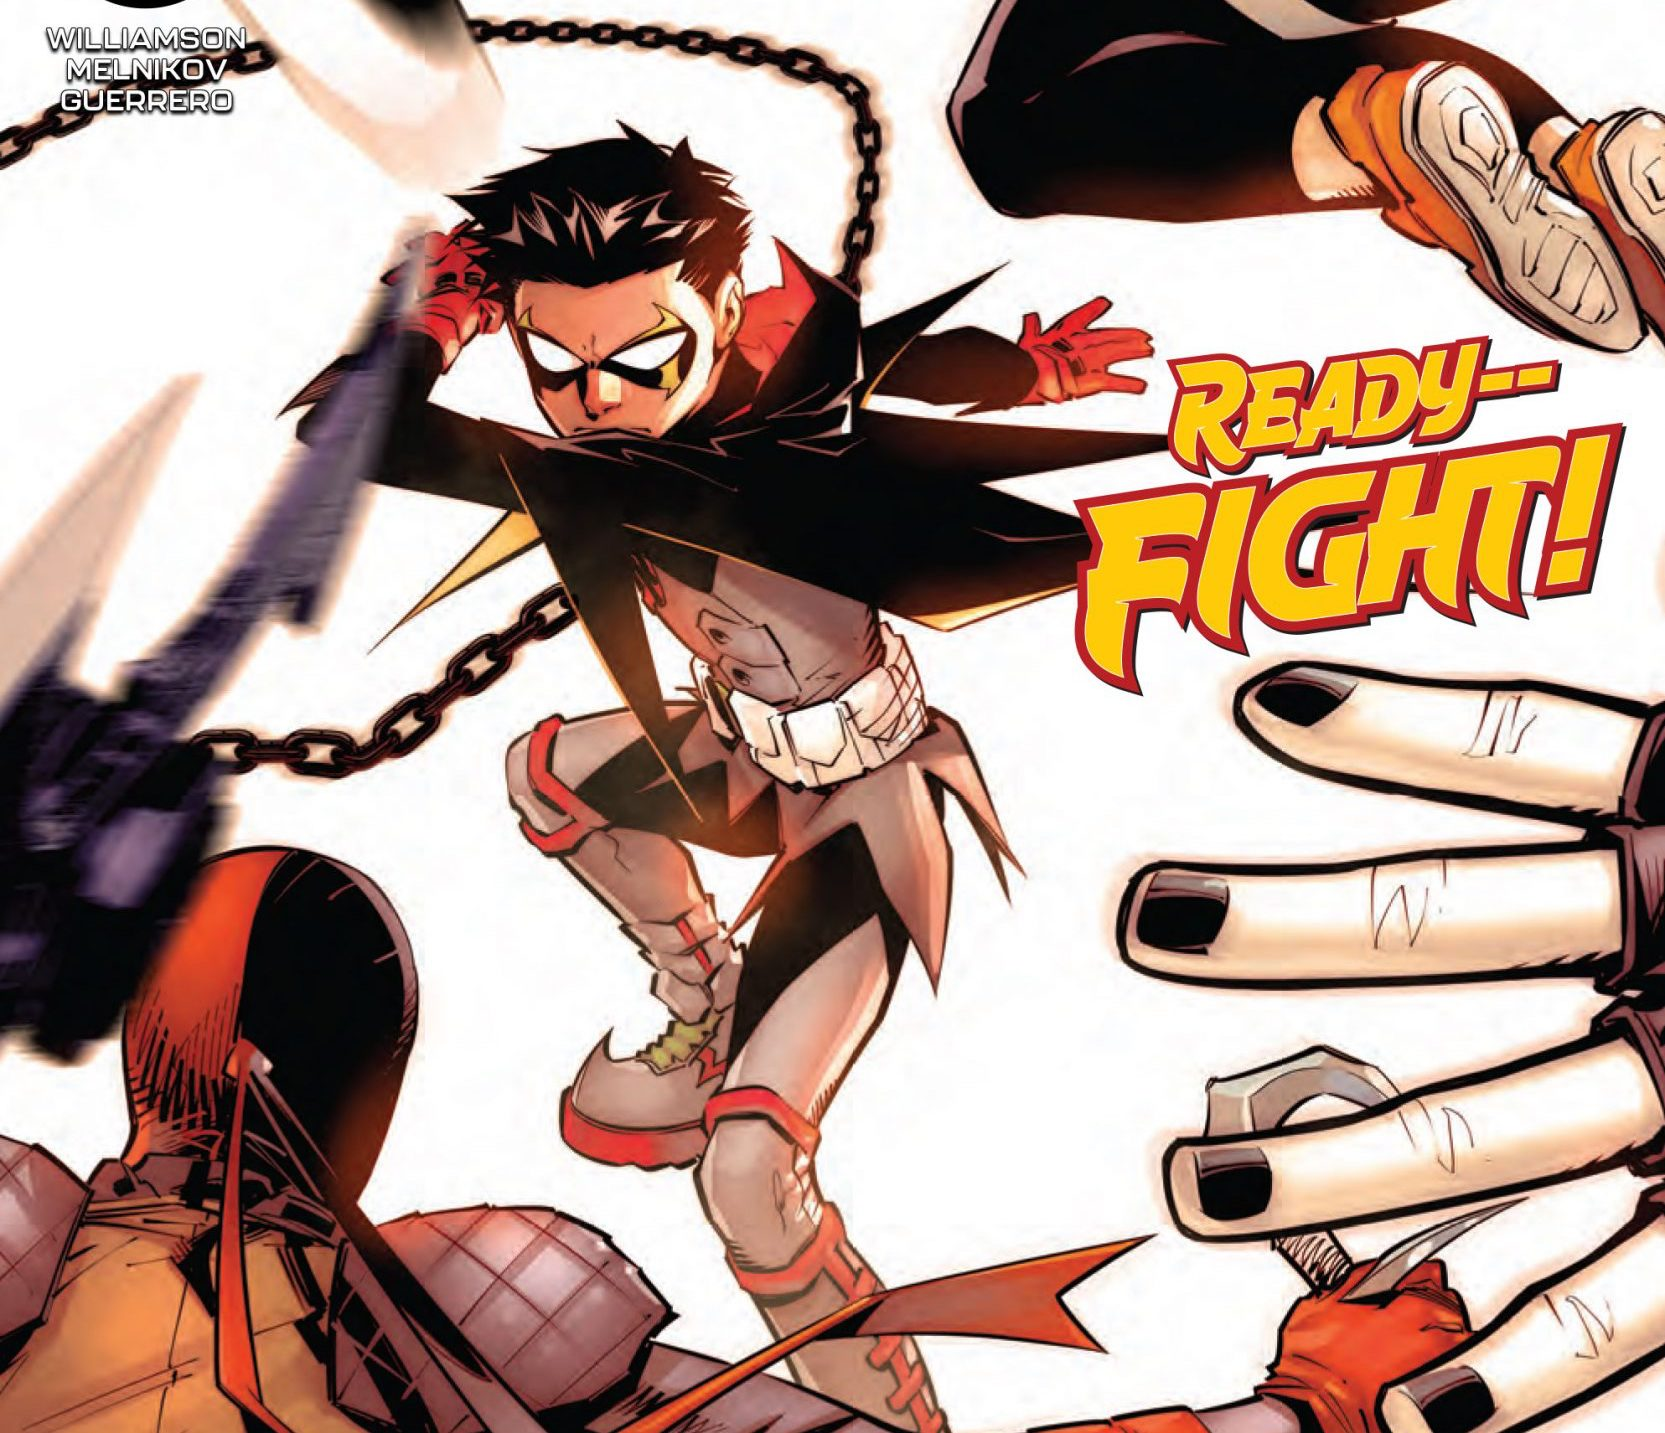 'Robin' #6 kicks off the first round of the Lazarus Tournament